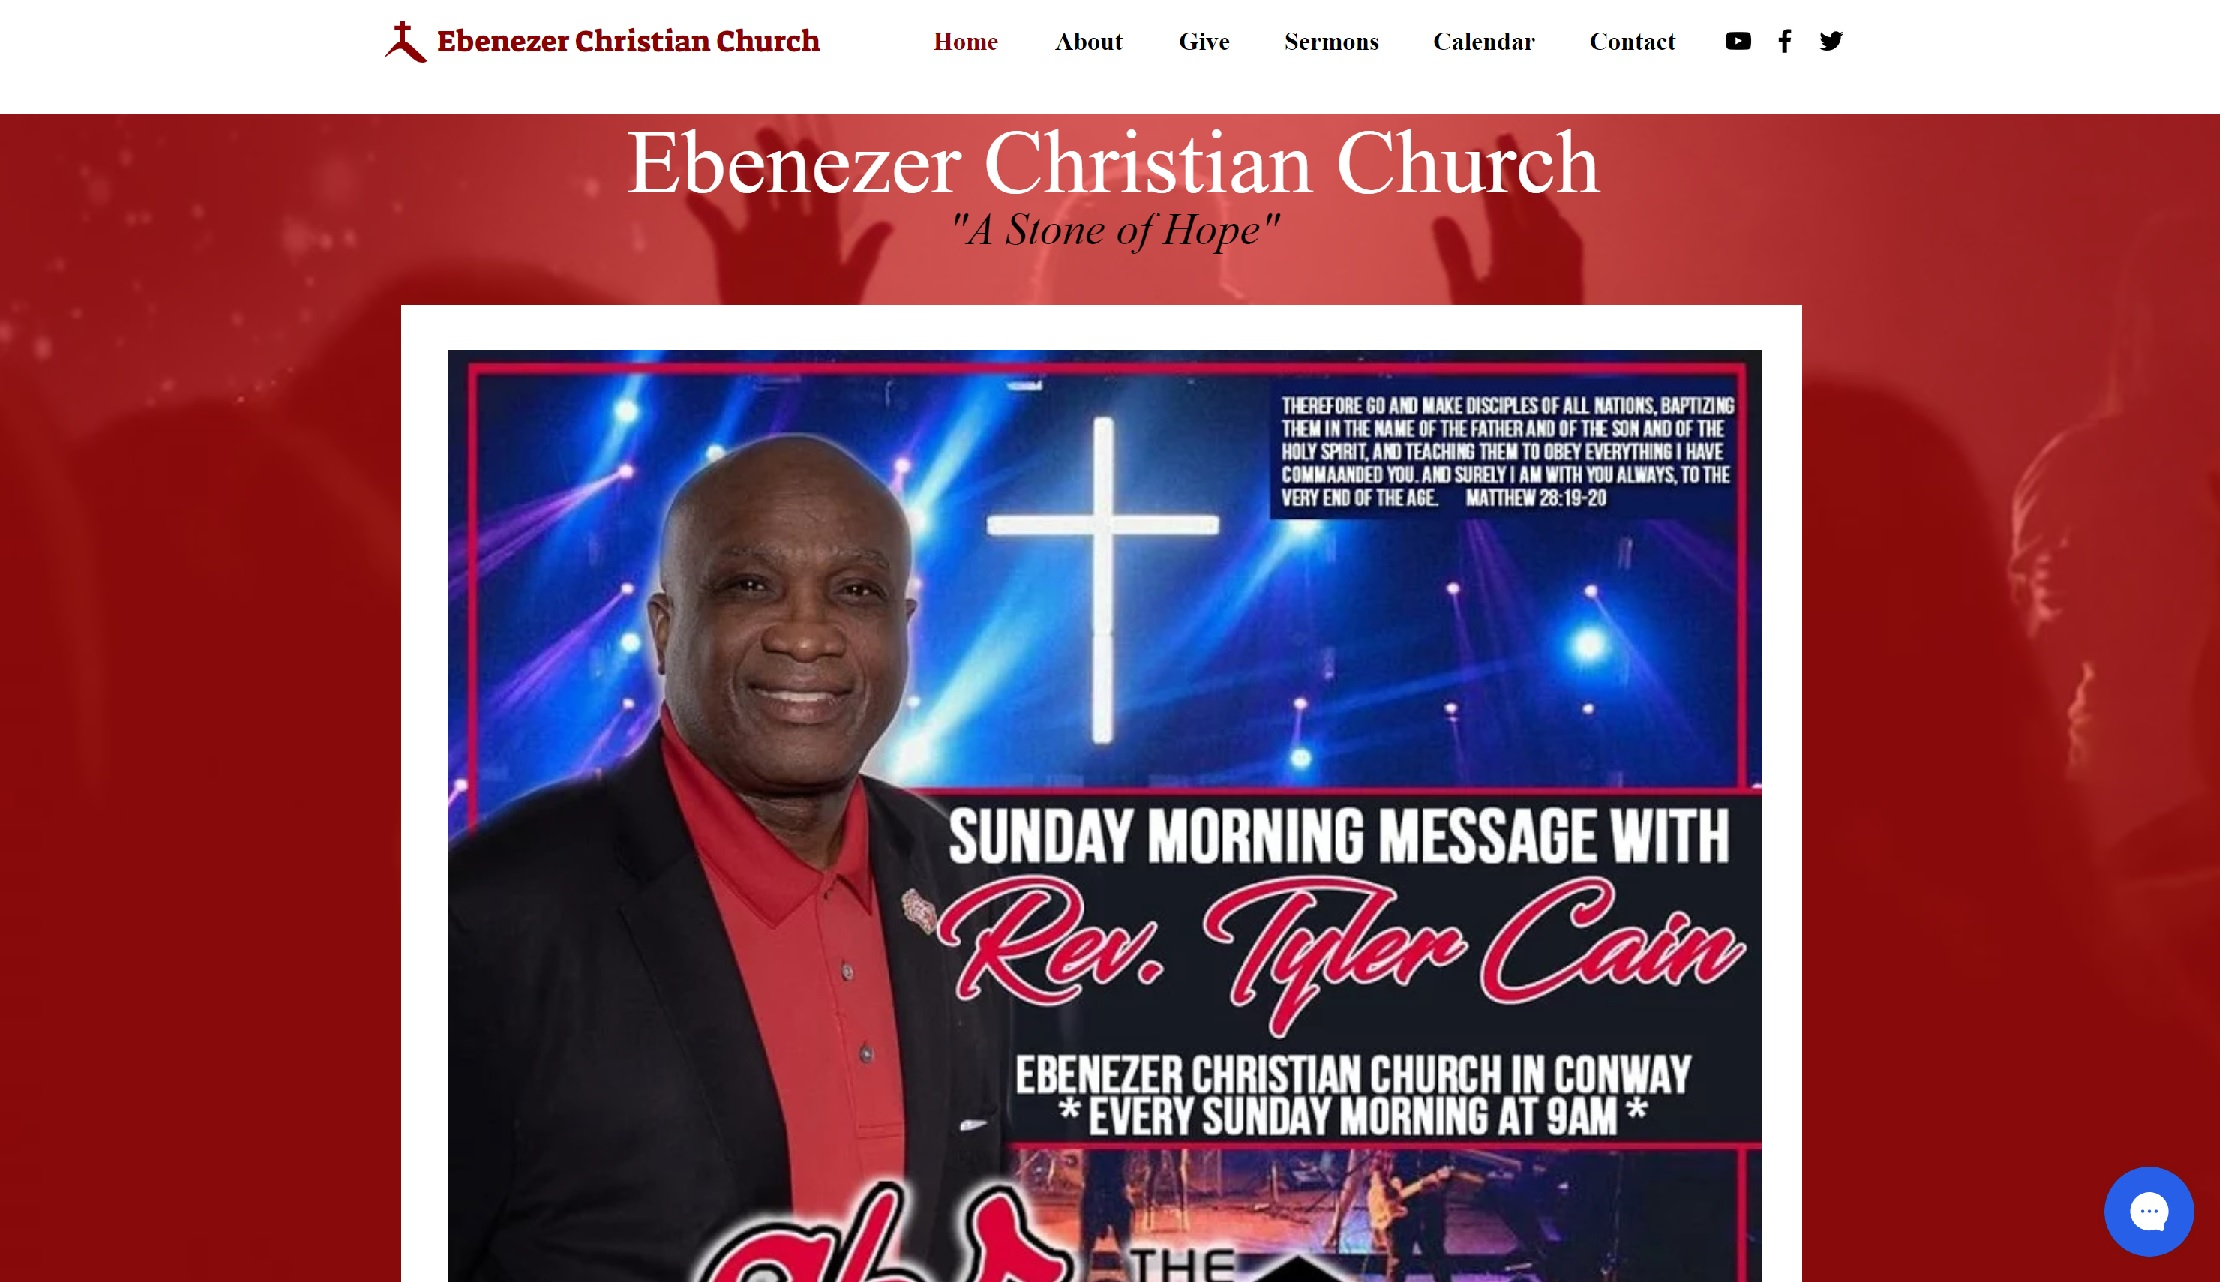 Ebenezer Christian Church